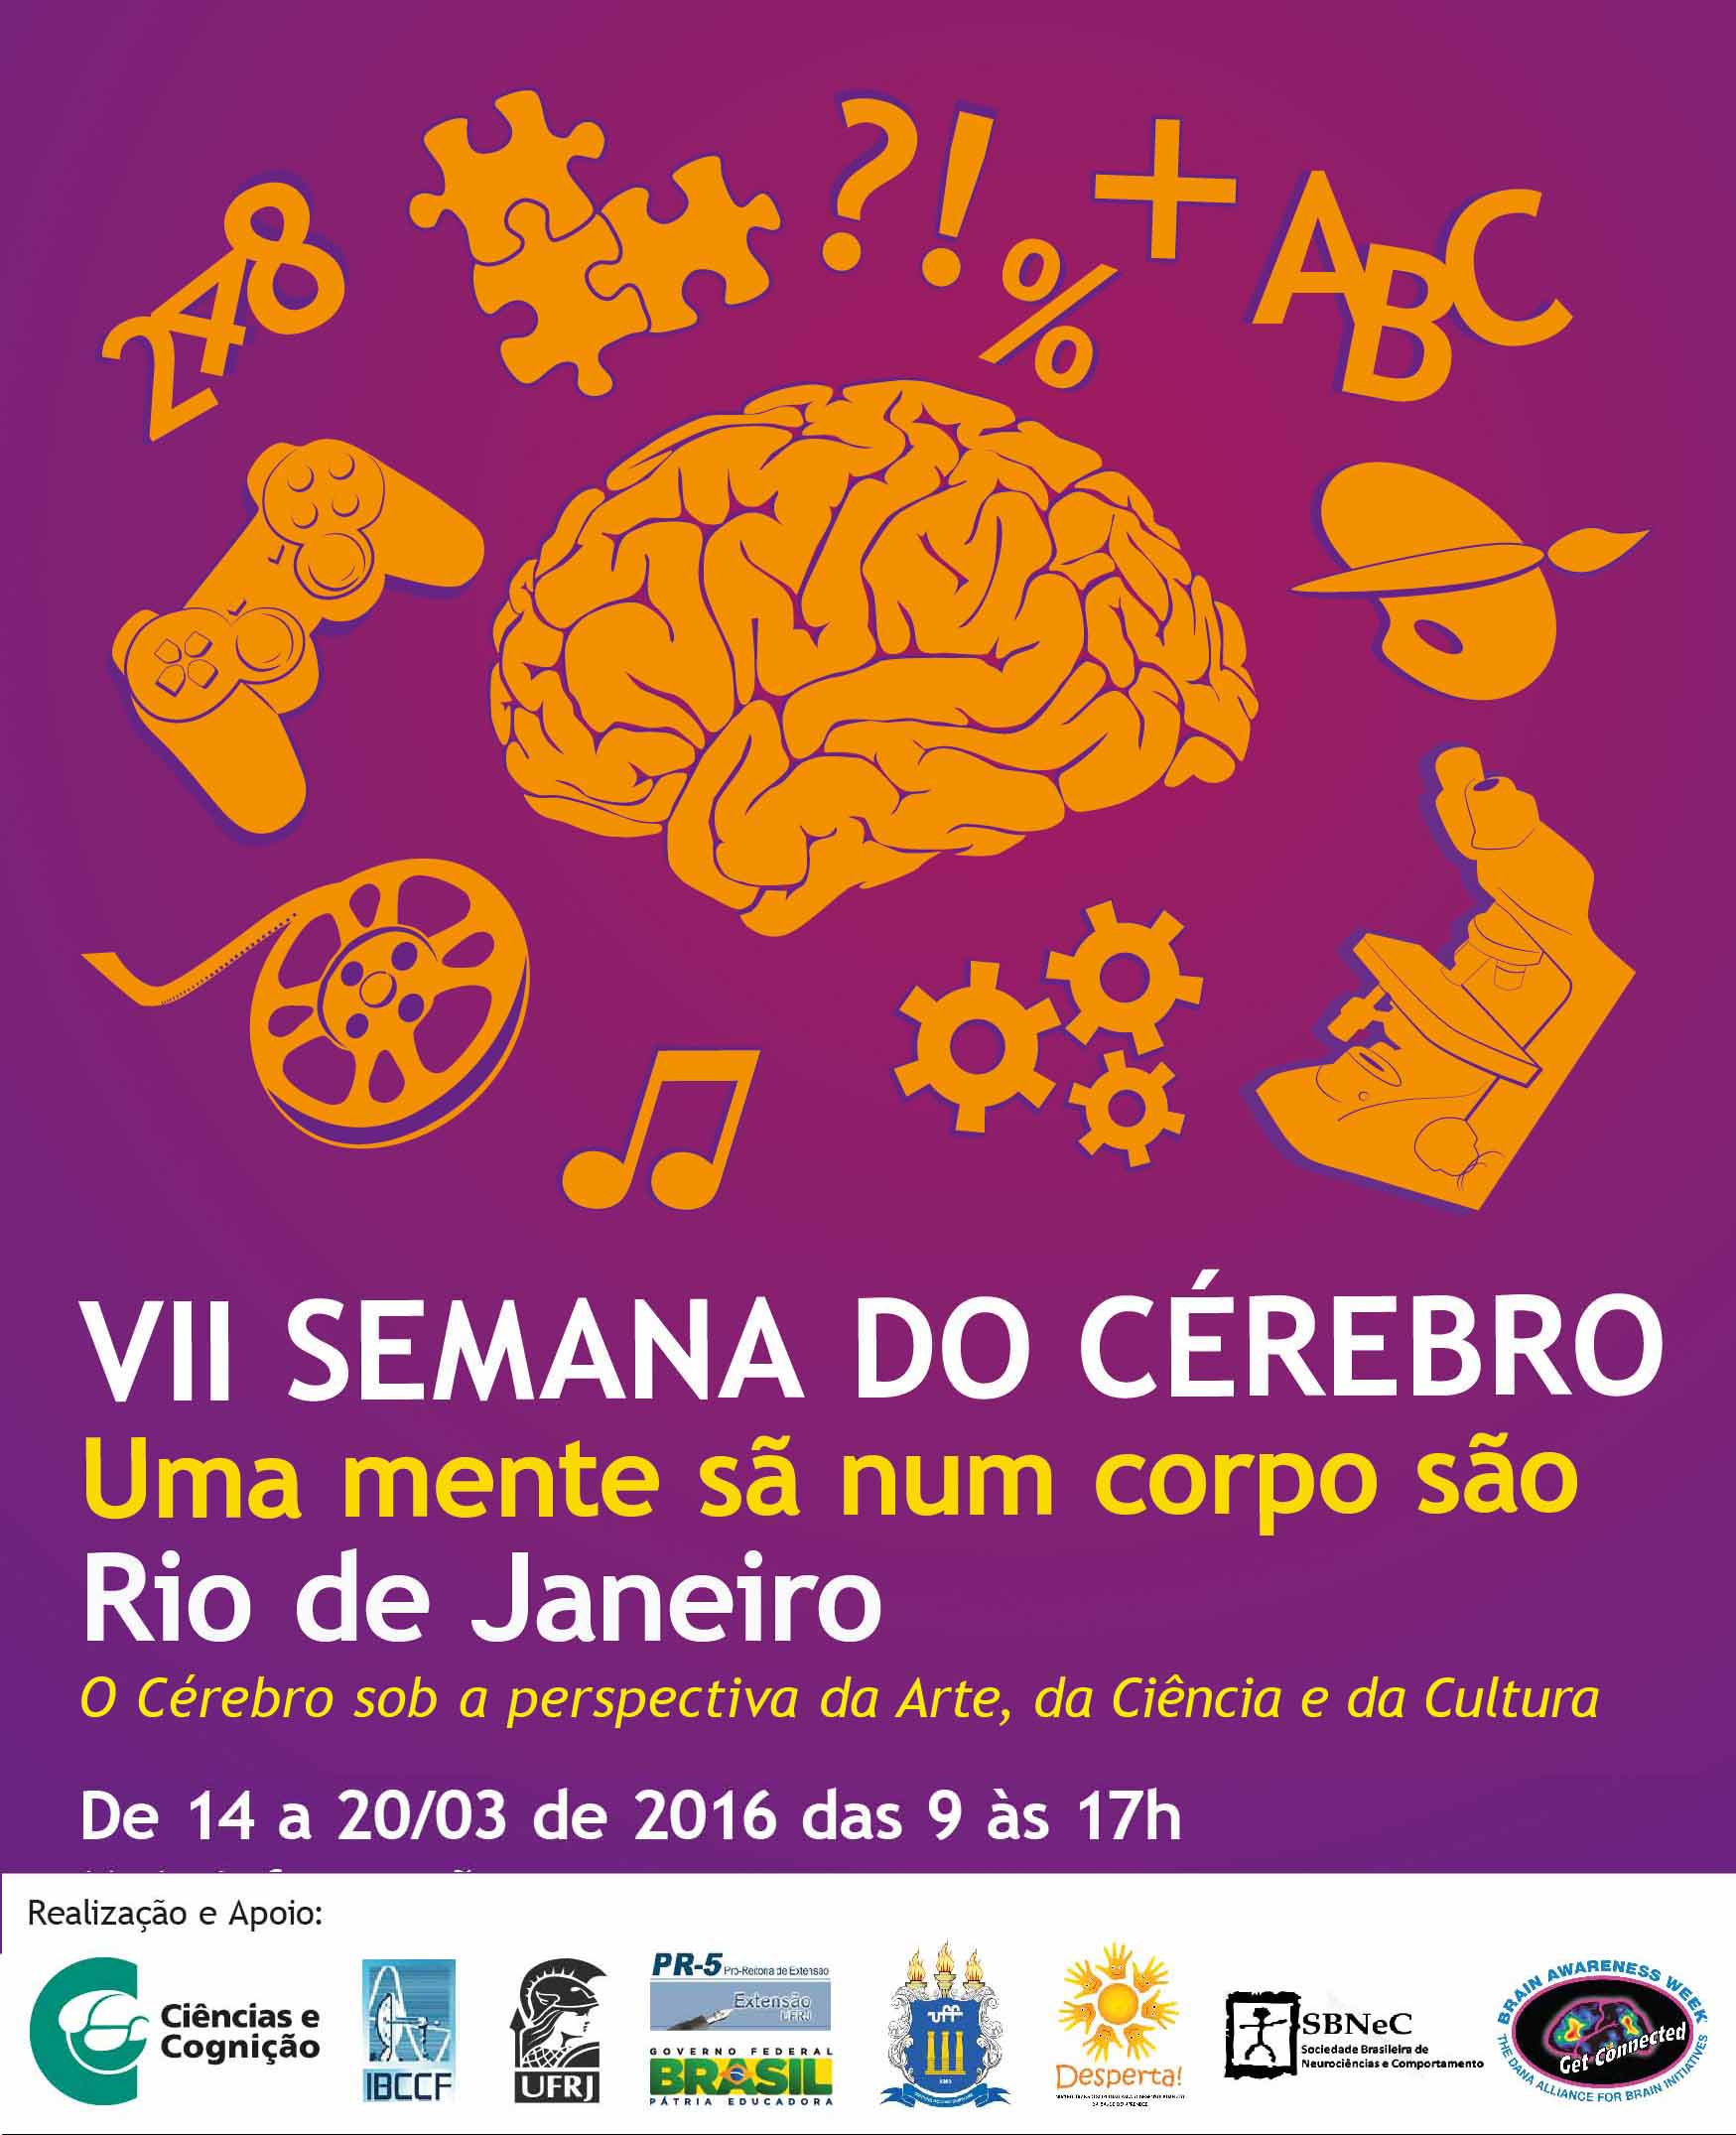 2015 - Cartaz Semana do Cérebro_Cassia_Modificado